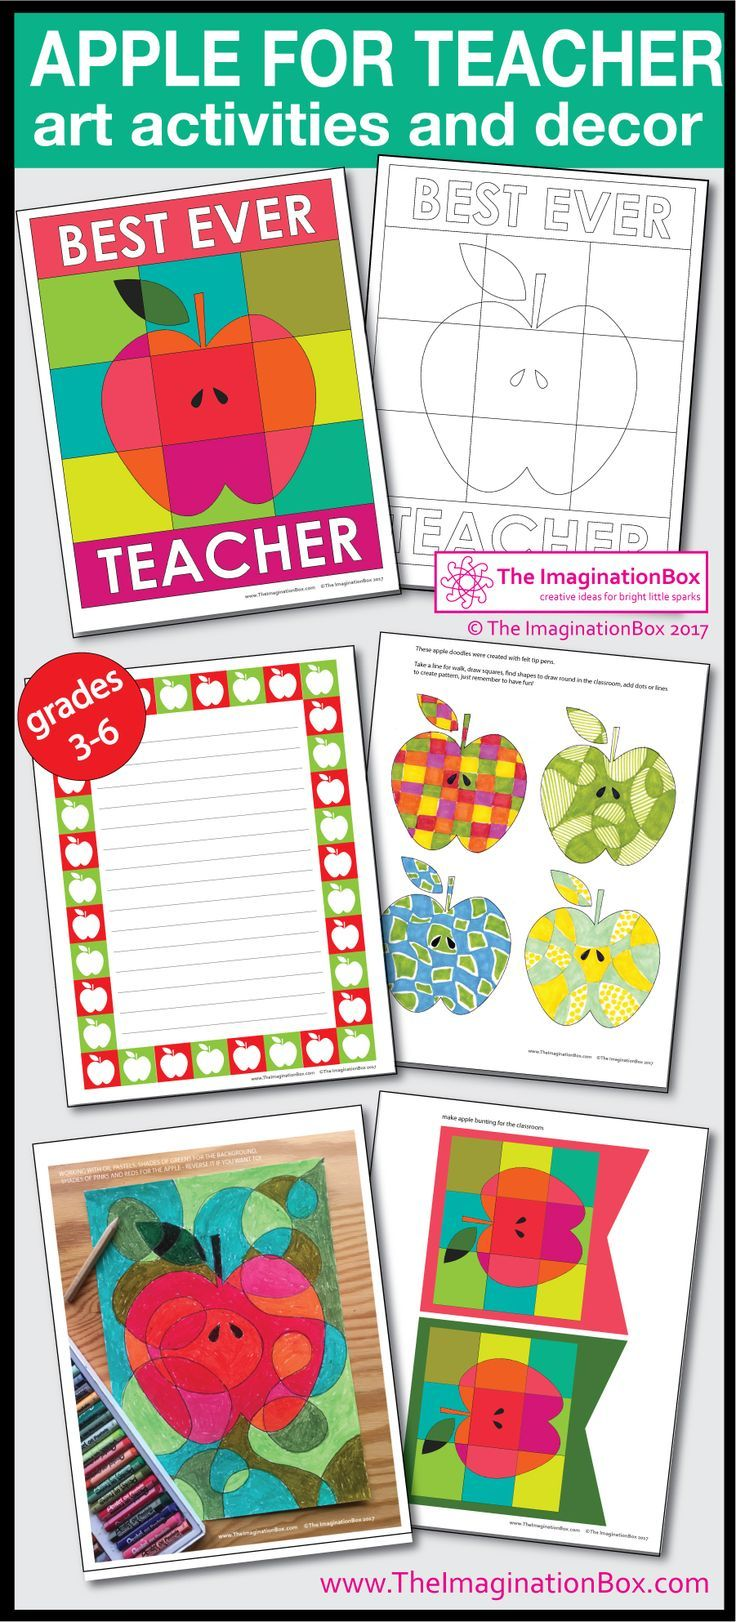 This apple themed art activities and classroom decoration pack is the perfect pdf download creative activity resource for a fun End of Year. Make teacher a card, make bookmarks, wristbands, hang bunting and posters and experiment with some abstract art activities with paints and pastels. Follow the link to view the full description and preview